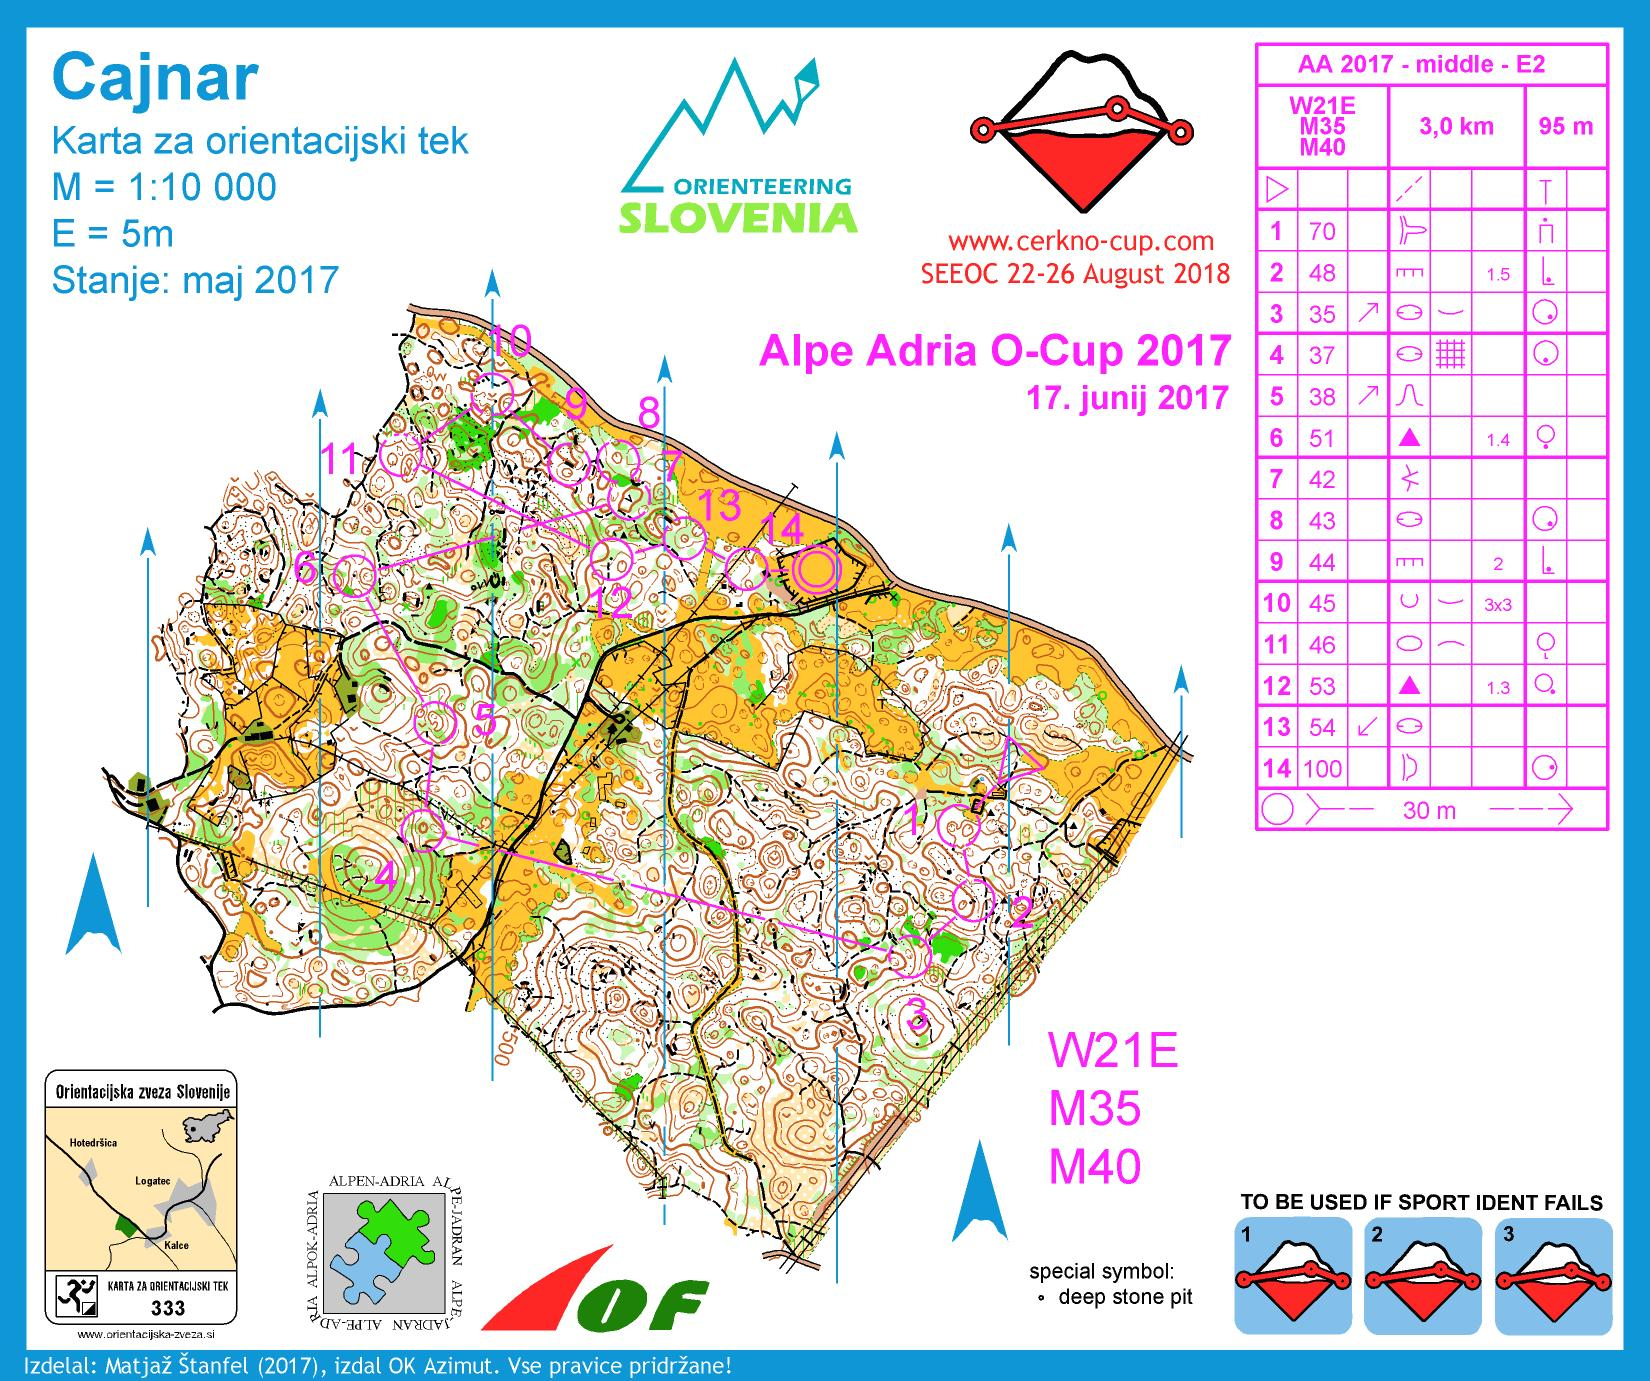 Alpe Adria Orienteering Cup - W21E, M35, M40 - middle distance (17. 06. 2017)